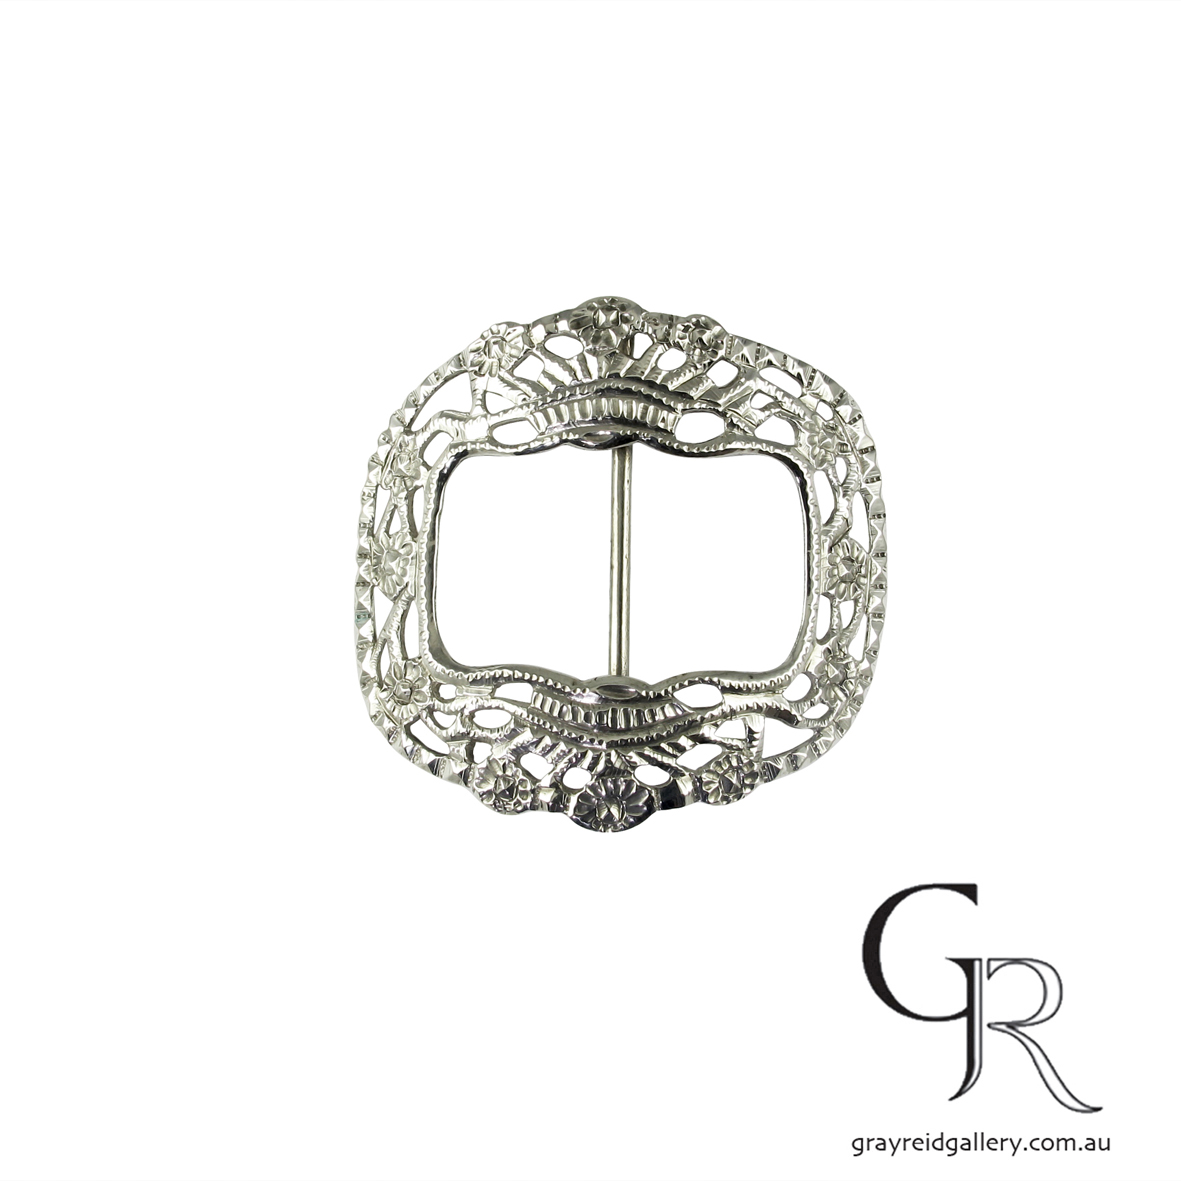 antiques and collectables melbourne sterling silver belt buckle Gray Reid Gallery 3.jpg